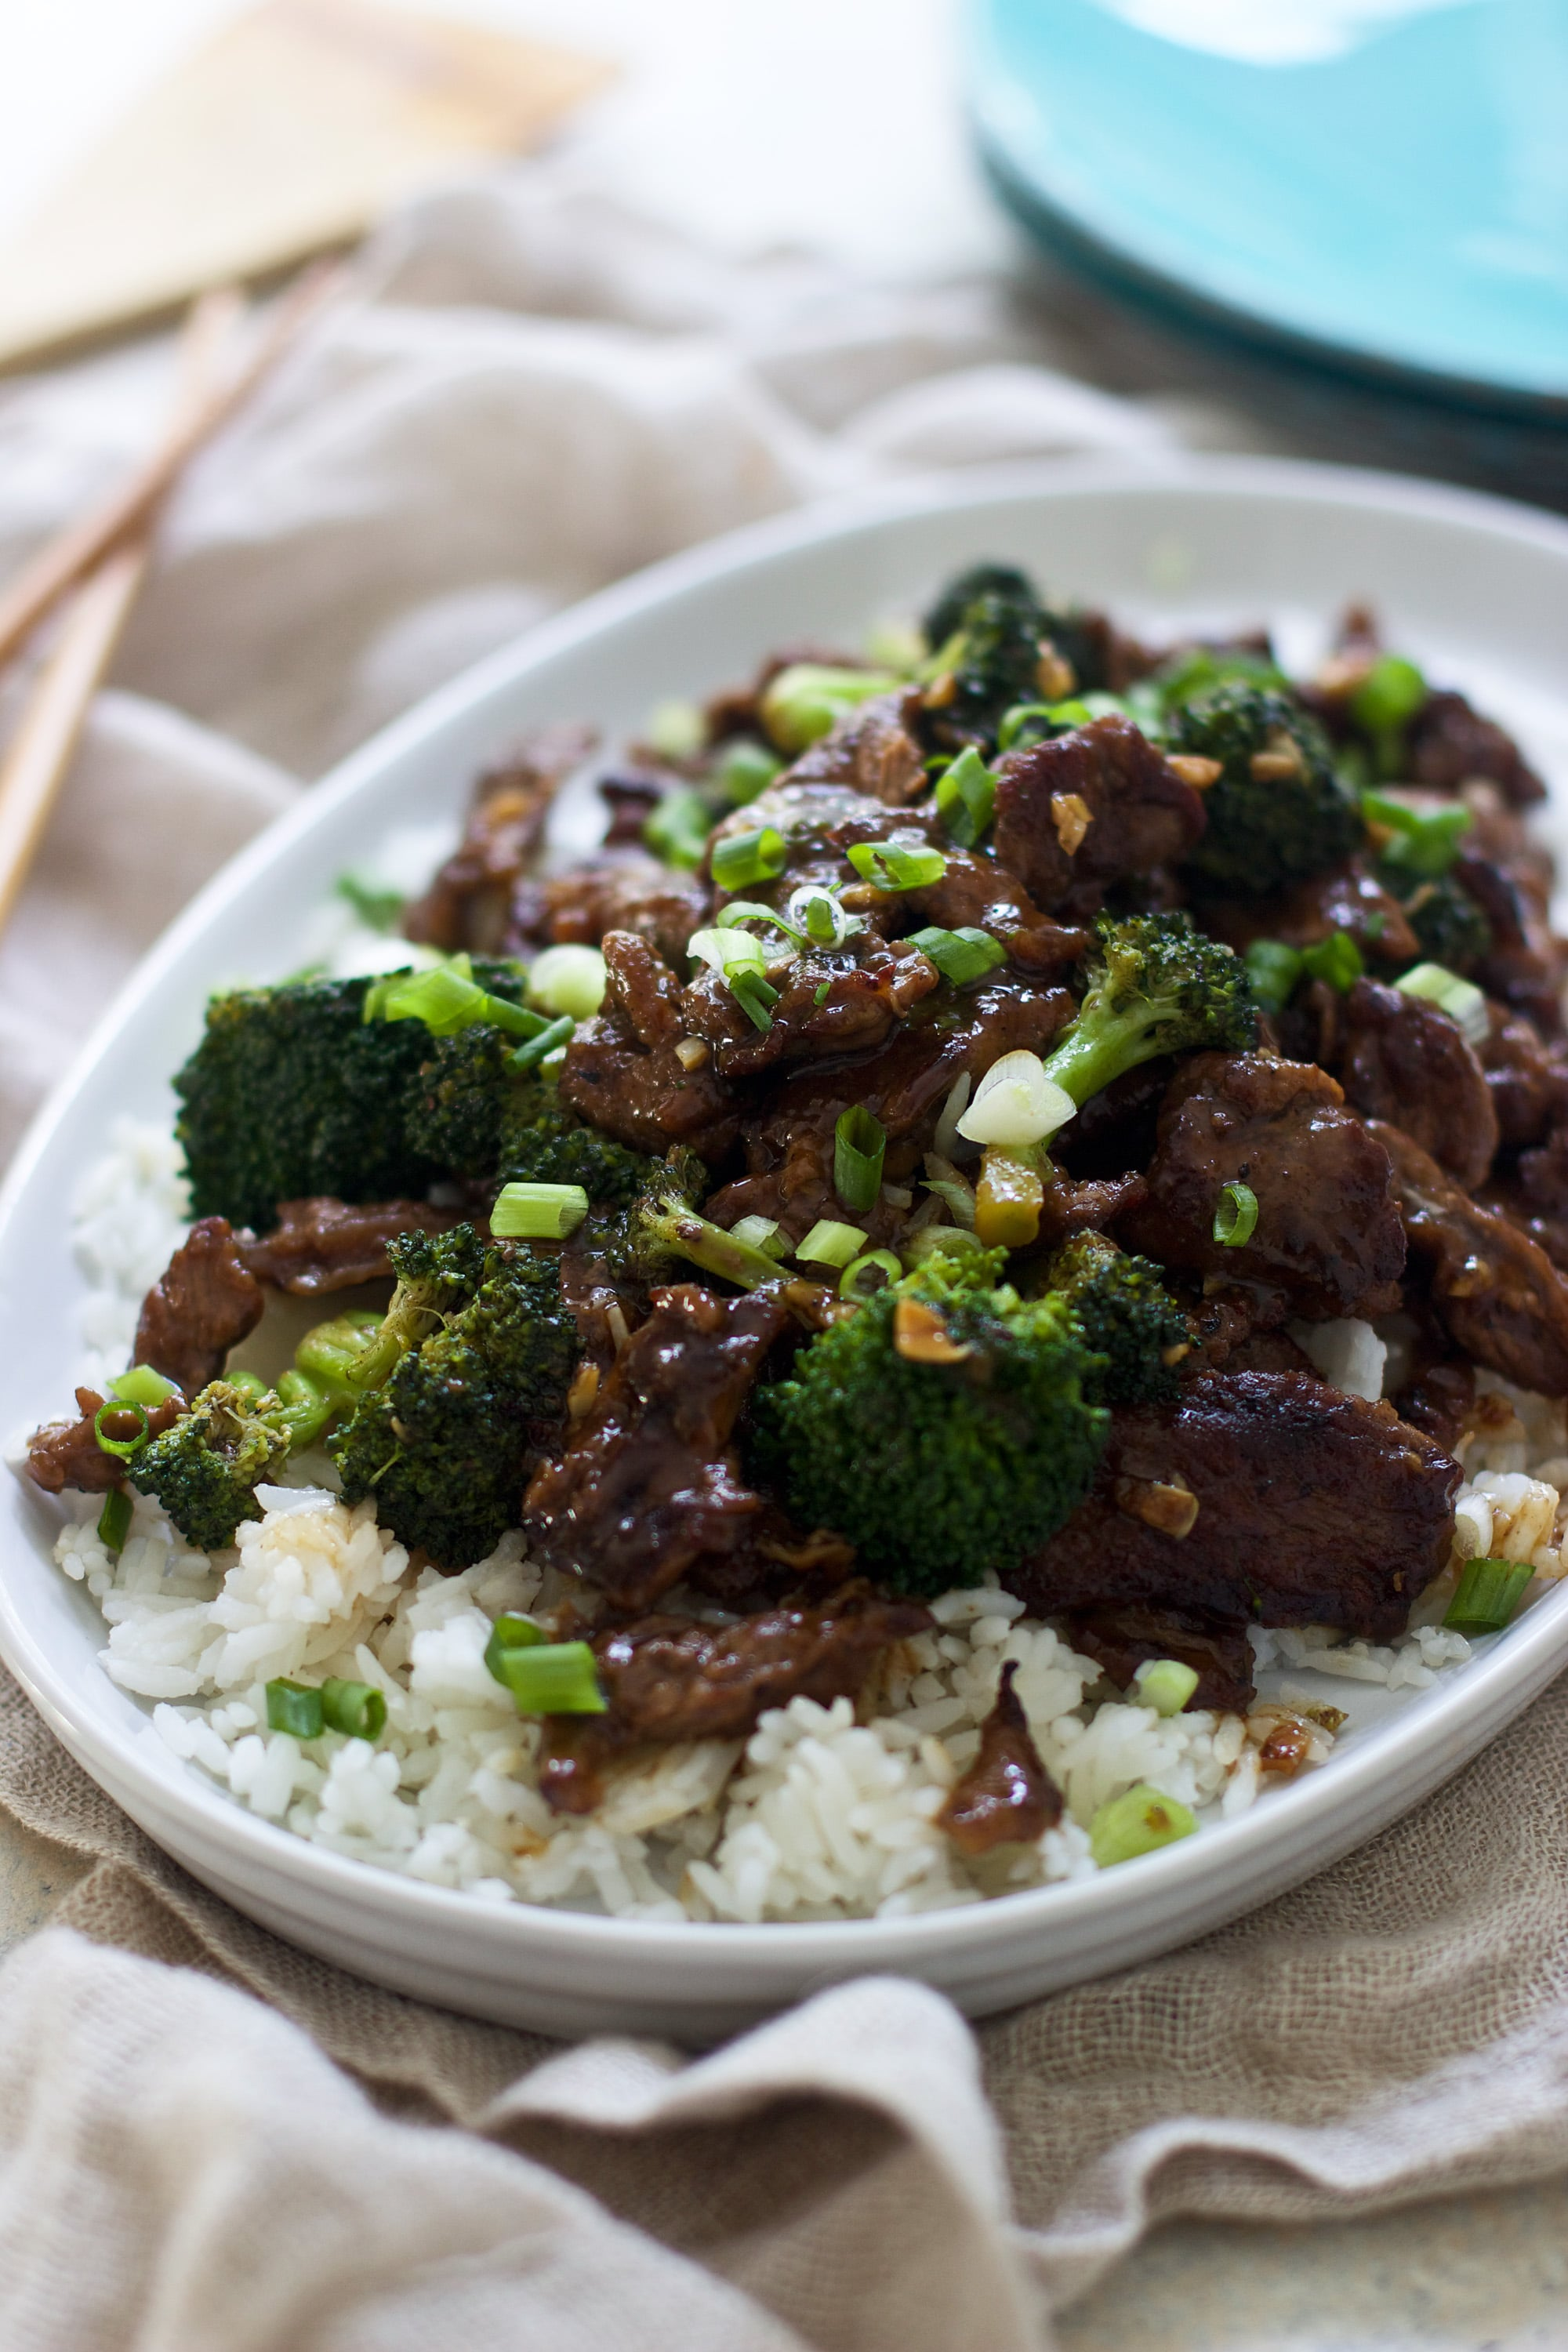 Easy Beef with Broccoli - Comes together in under 30 minutes, is lightened-up and SO much better than takeout!